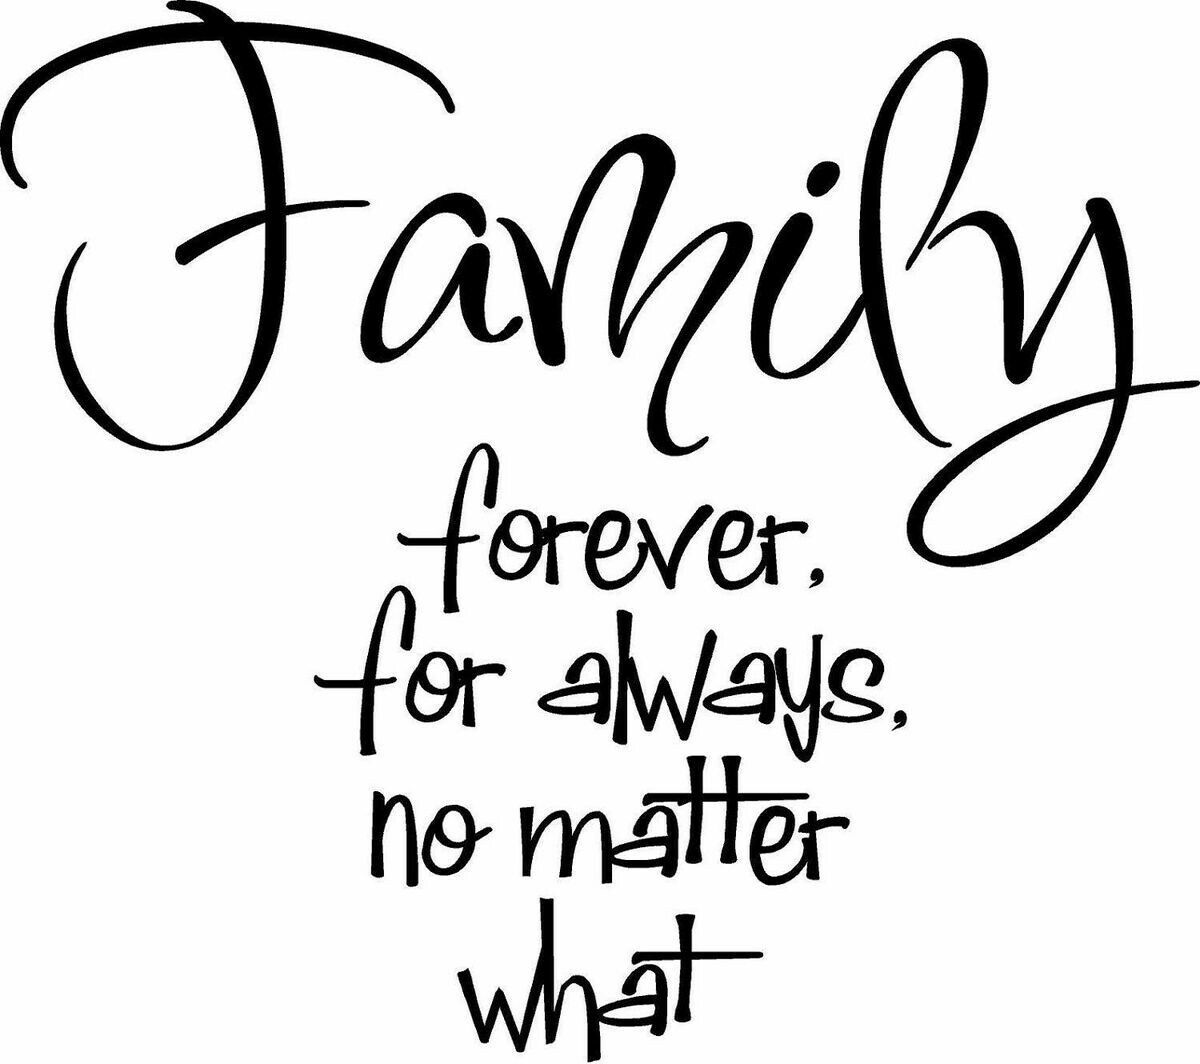 Tattoo ideas inspiration quotes sayings family forever tattoo ideas inspiration quotes sayings family forever for always no matter what family quote pinterest tattoo inspiration and biocorpaavc Gallery